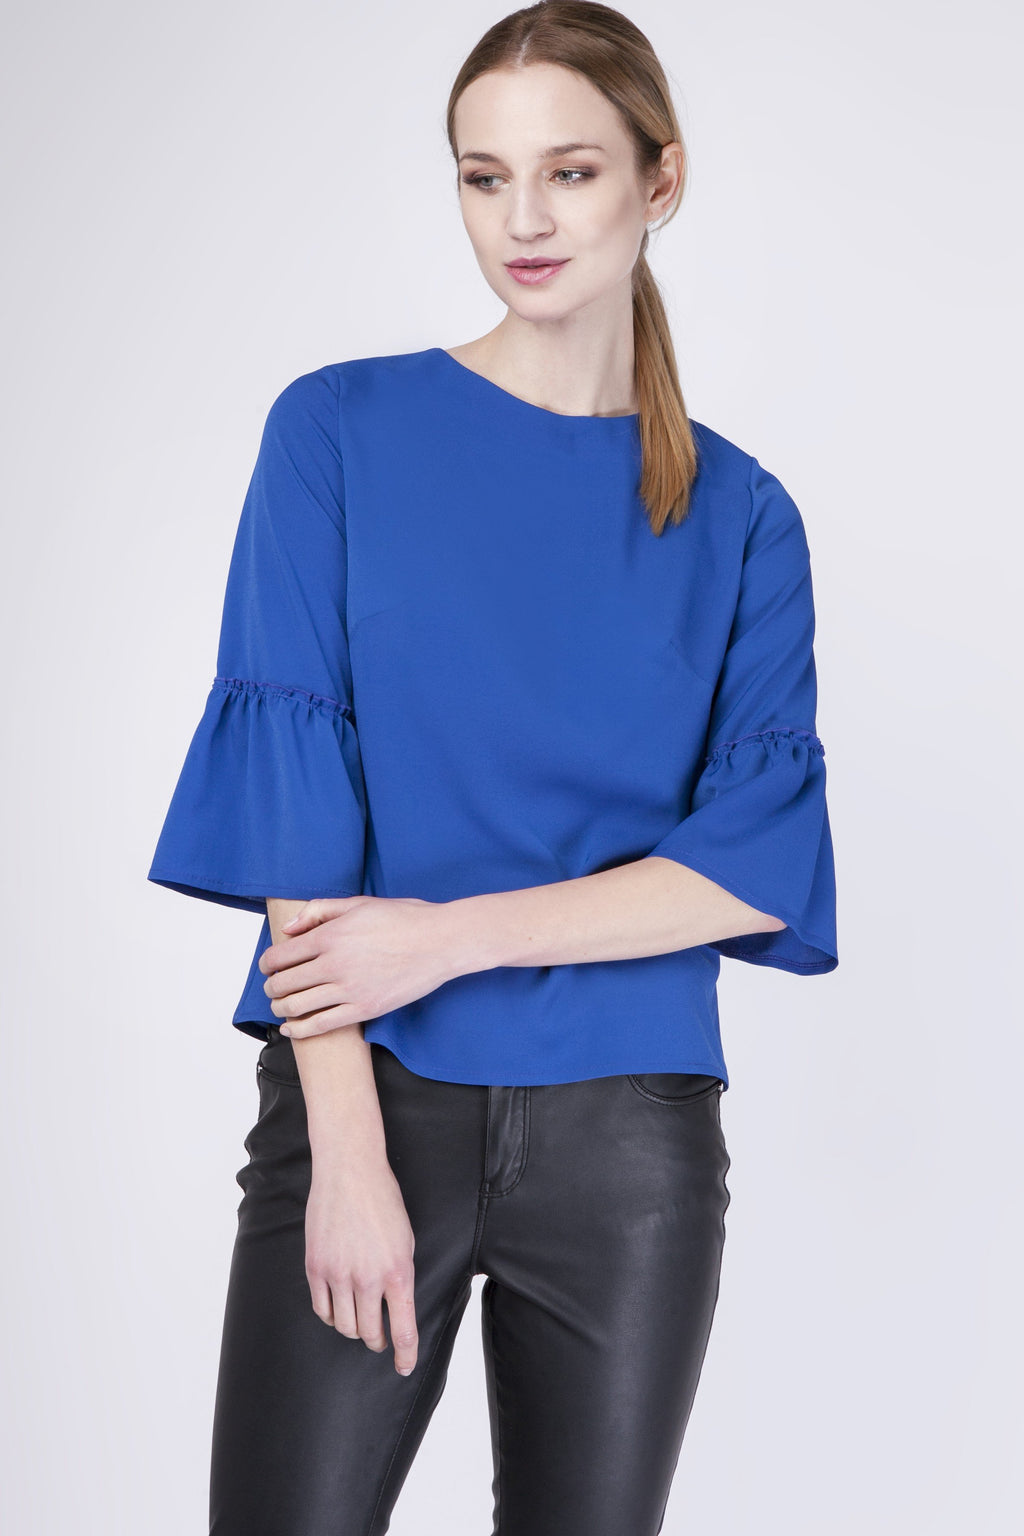 Blue Blouse With 3/4 Bell Sleeves - So Chic Boutique